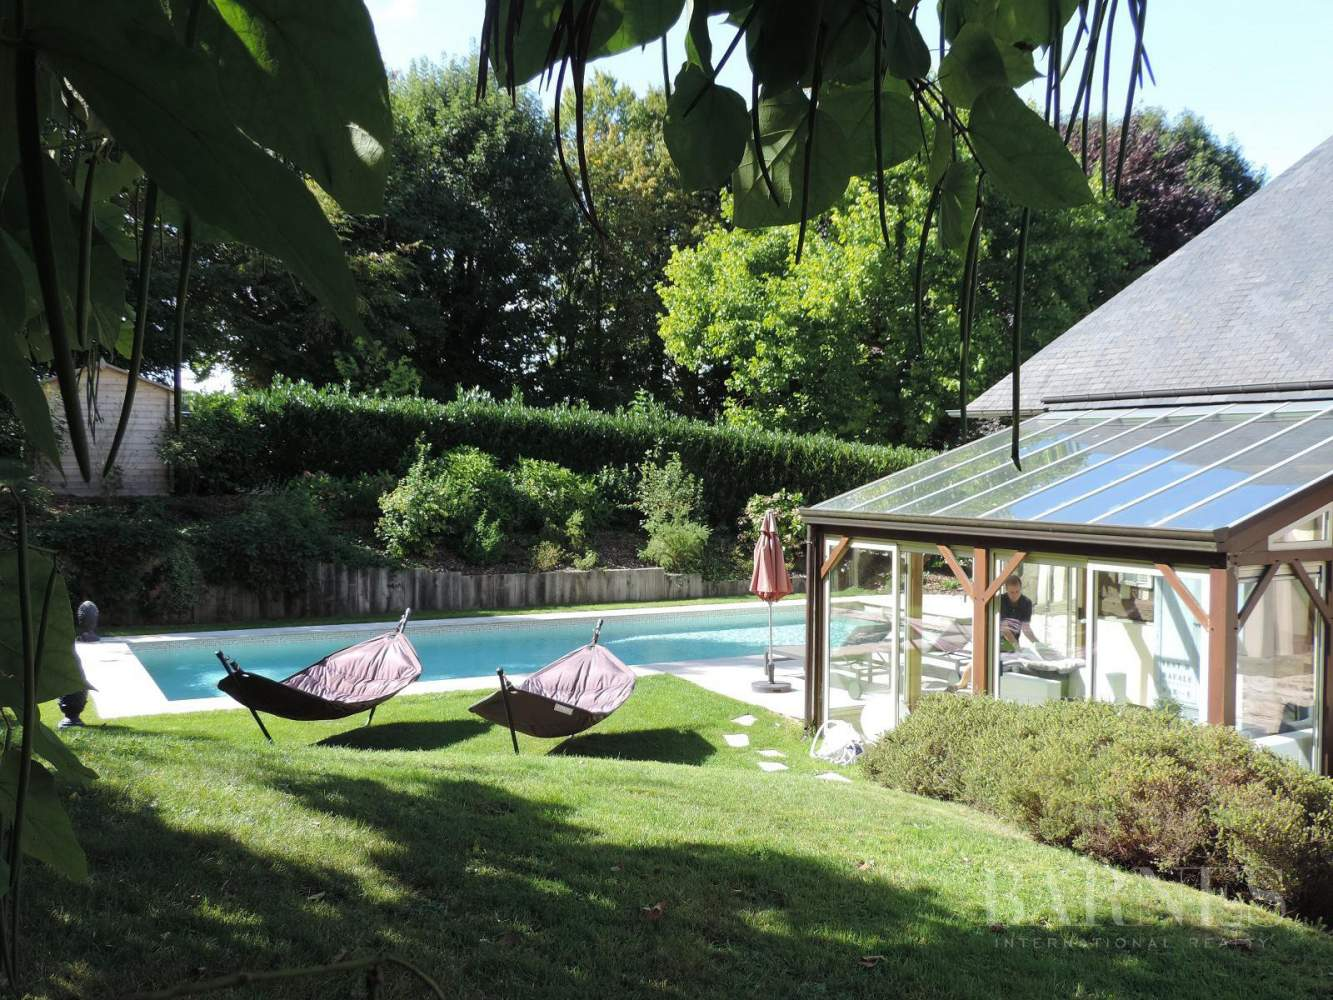 Near Deauville Property with character - 5 bedrooms - heated pool, tennis court, 2.47-acre landscaped park picture 15